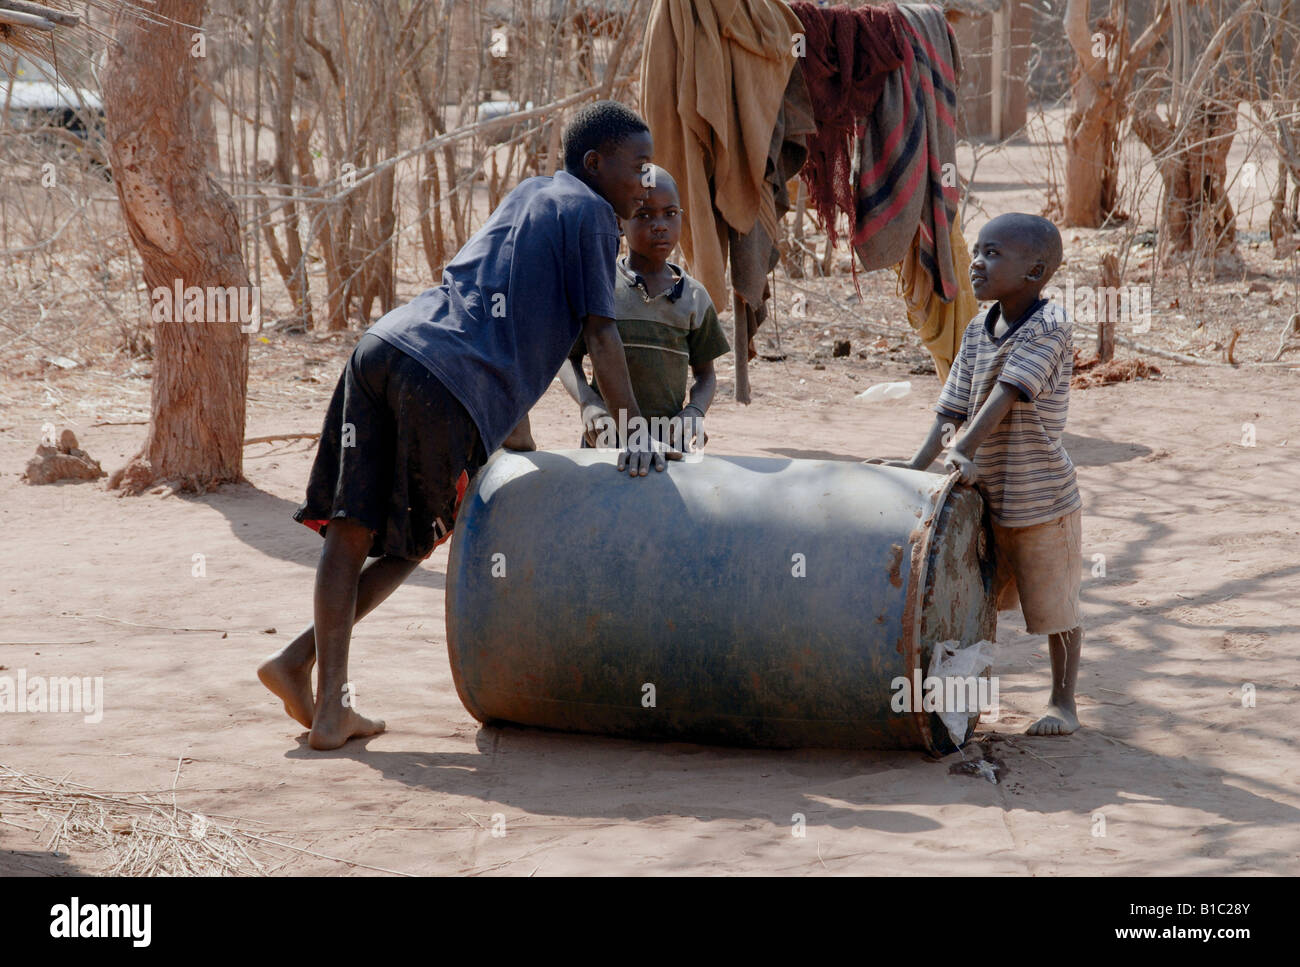 geography / travel, Zambia, people, children rolling water barrel in Tonga Village near Siavonga at Kariba reservoir, - Stock Image